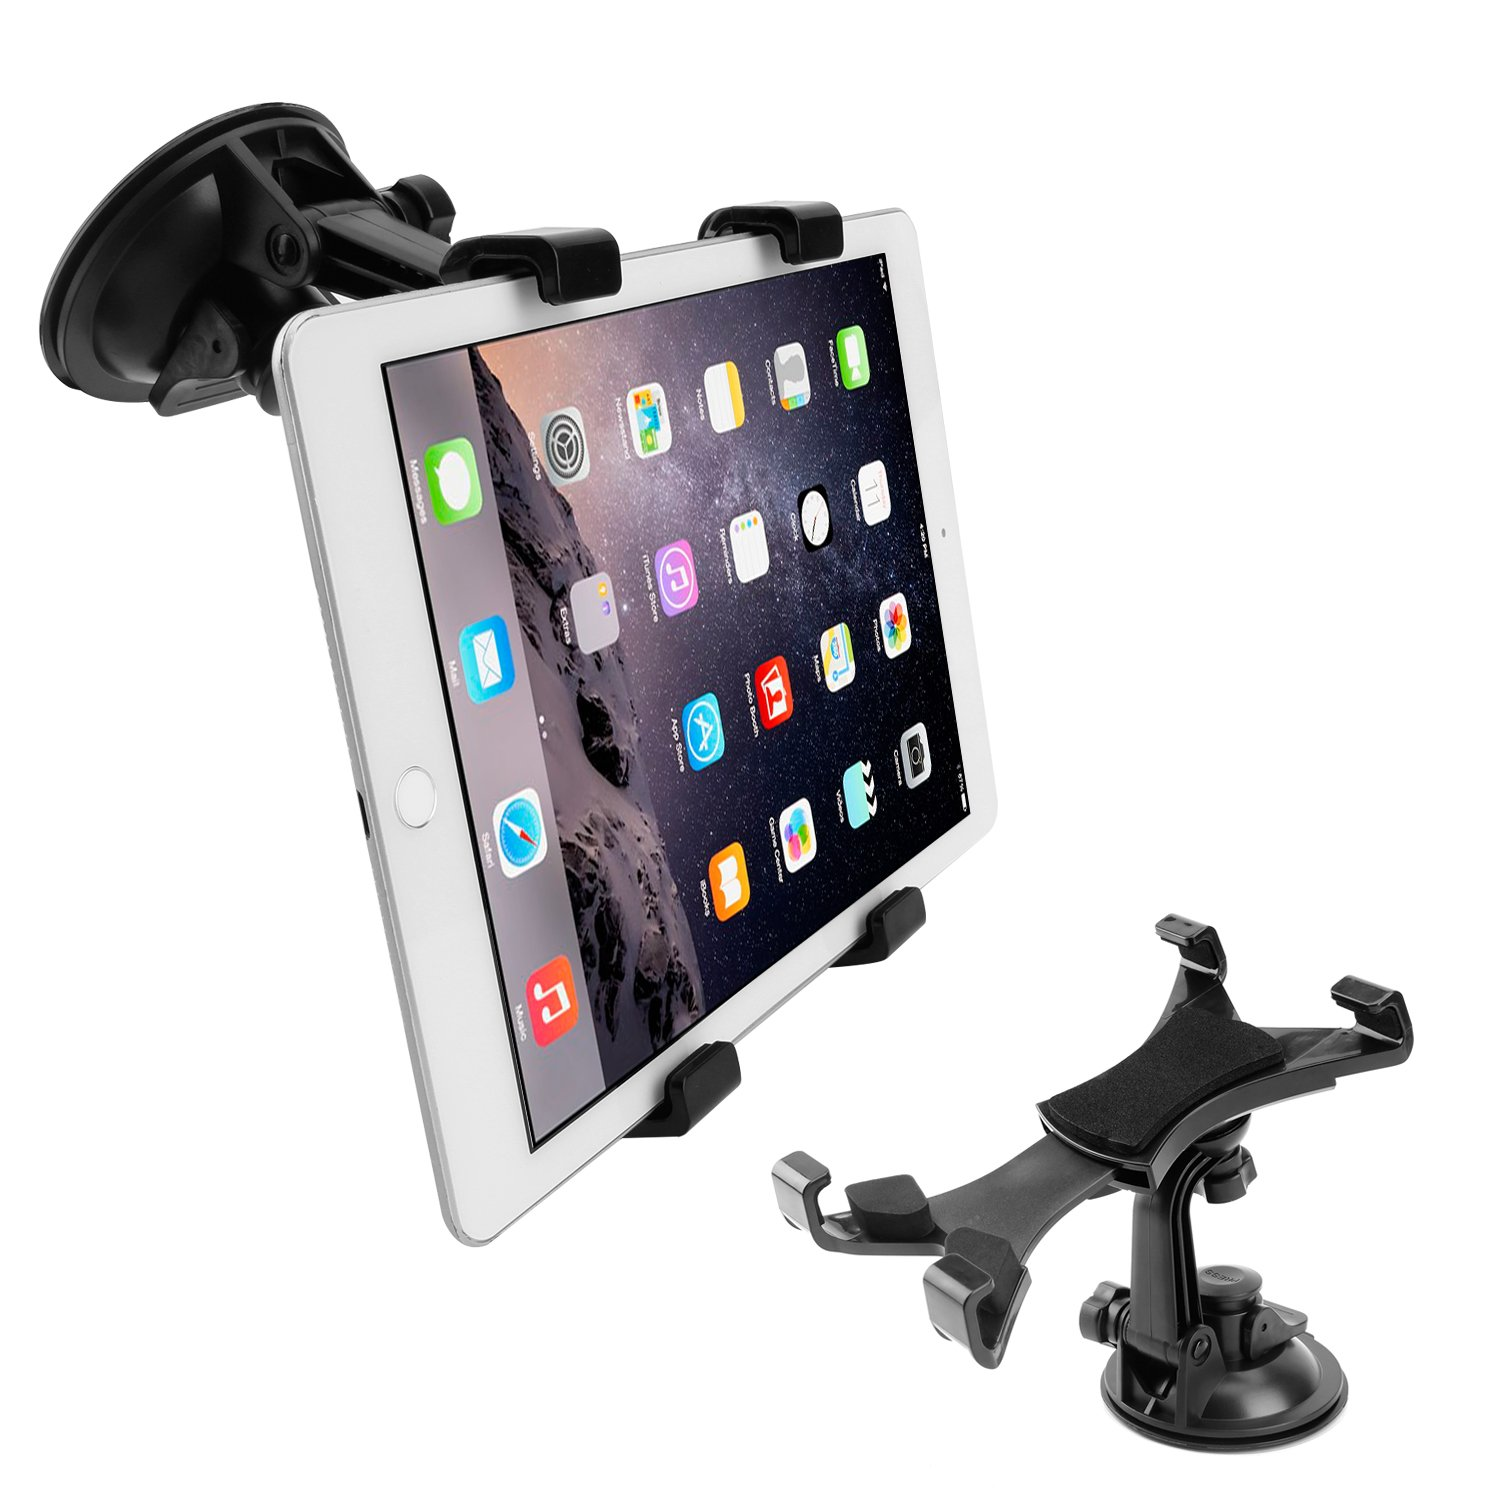 BEDEE Car Tablet Mount Holder, Car Dash Tablet Mount Holder Silicone Suction Cup for Car Windshield Dashboard for 7-10 Inch Screen Tablet 360 Degree Rotation for iPad Mini 4/3/2/1,Samsung Galaxy Tab